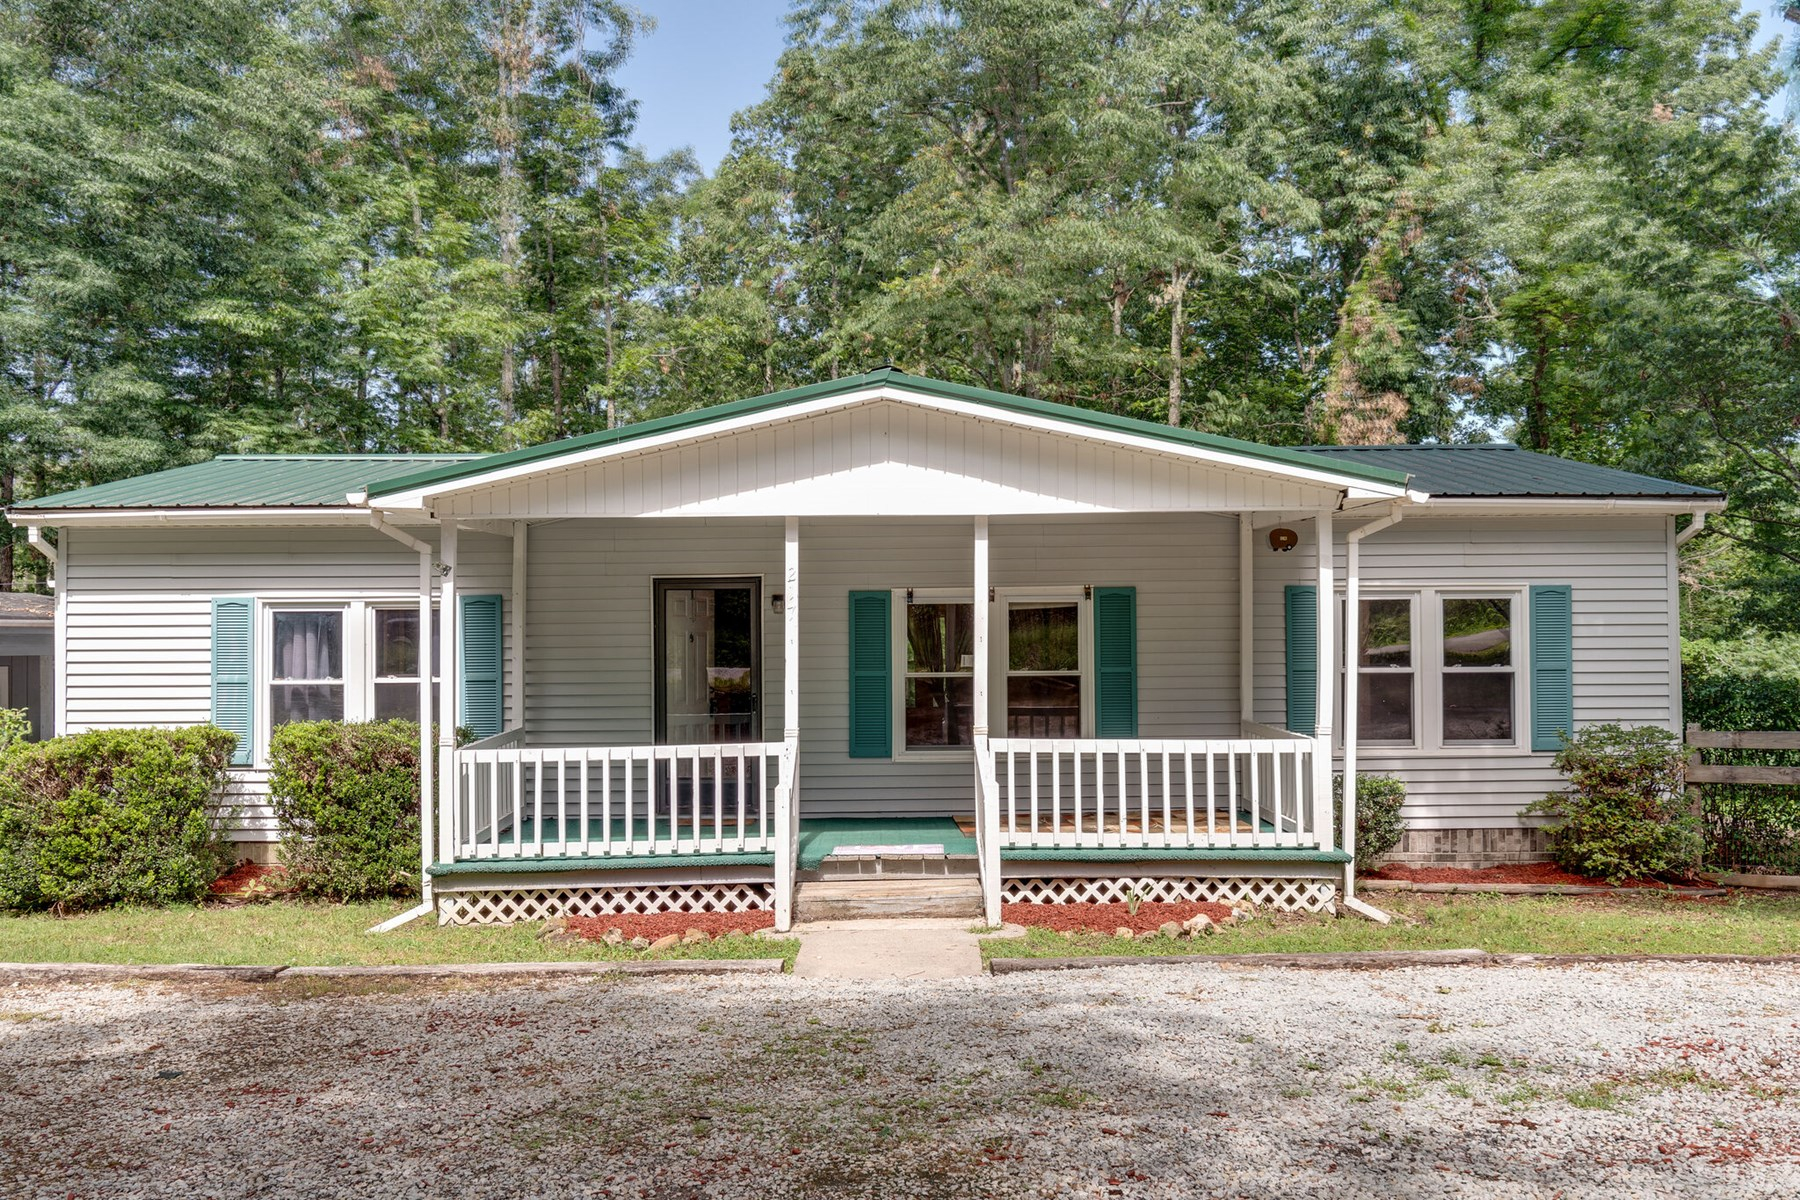 Tennessee Country Home with Acreage for Sale in Lewis County